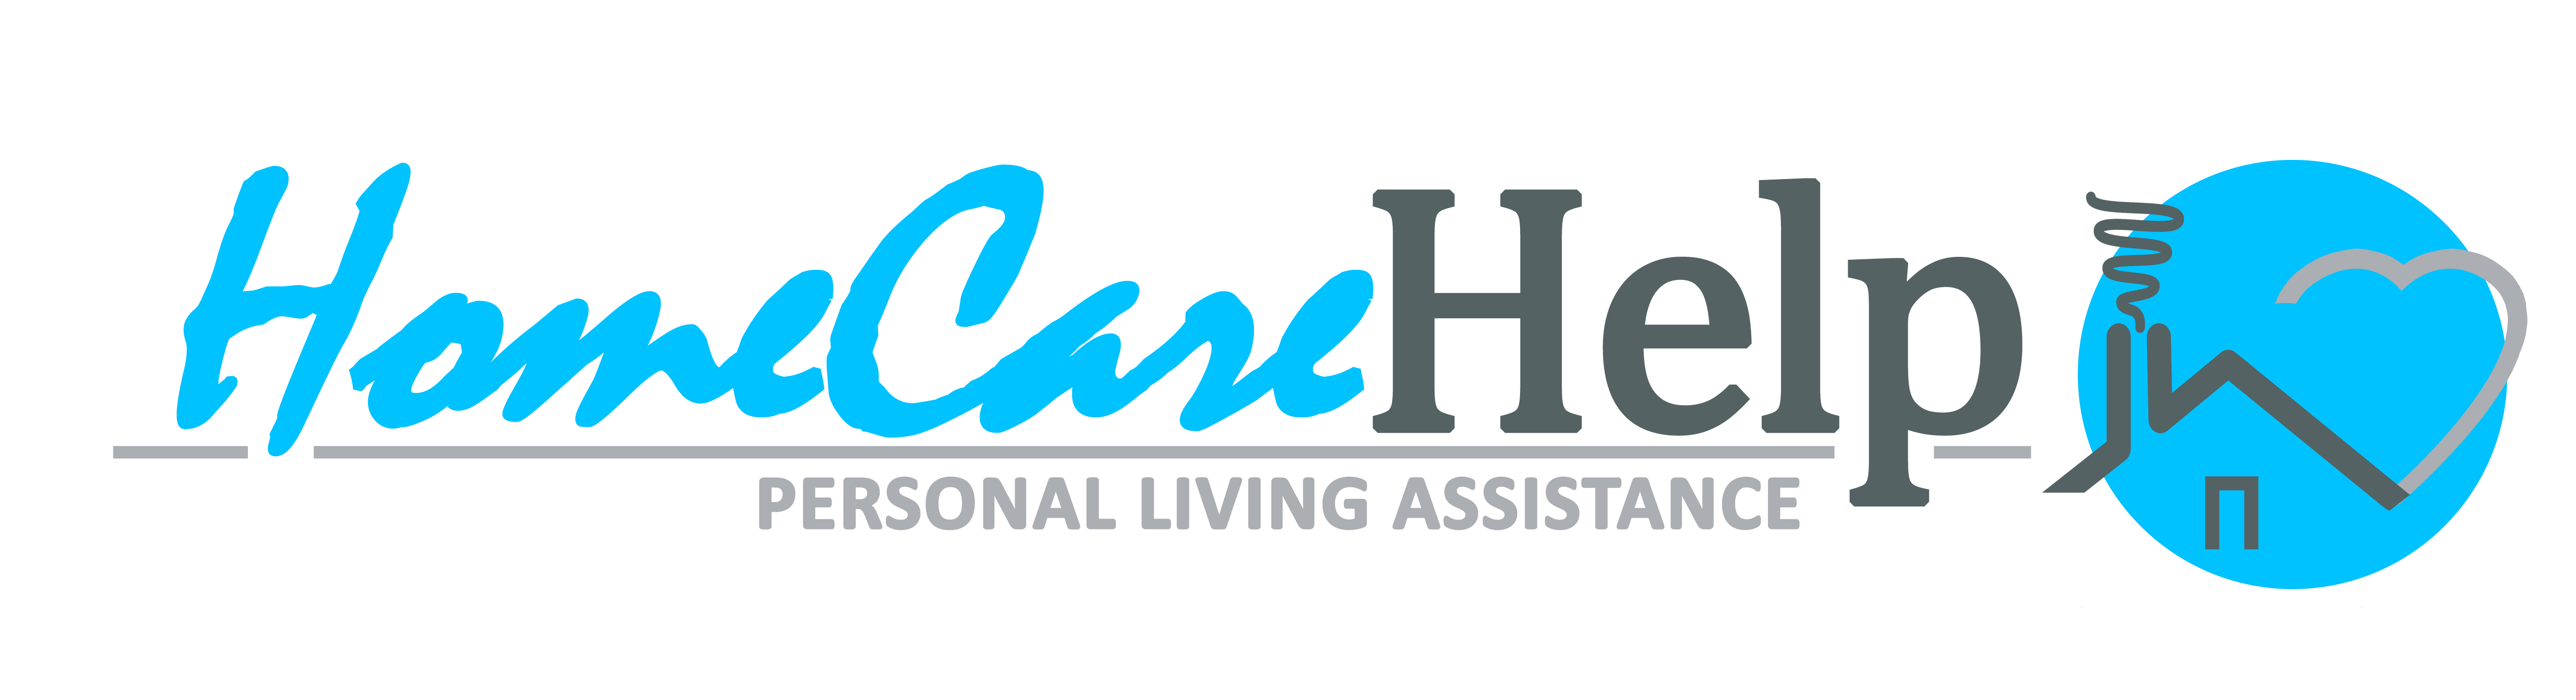 Home Care Help